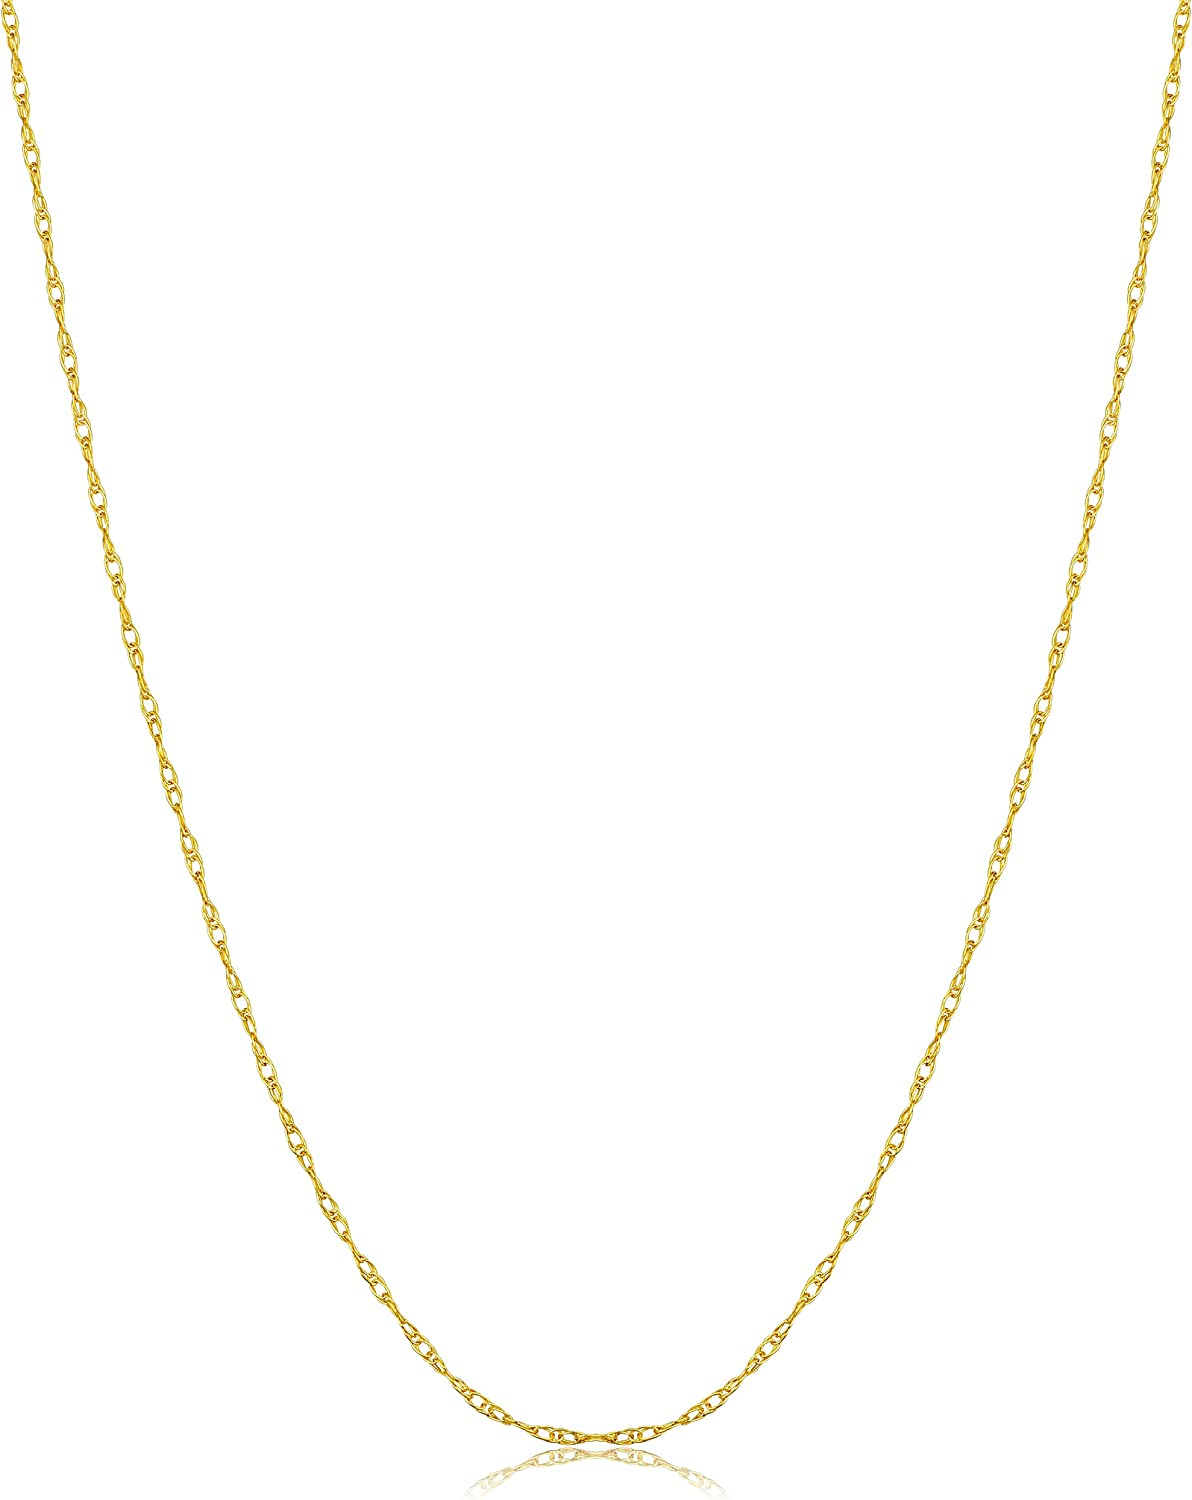 14k Yellow, White or Rose Gold 0.8 mm Rope Chain Necklace (14, 16, 18, 20, 24 or 30 inch) - Very Thin And Lightweight